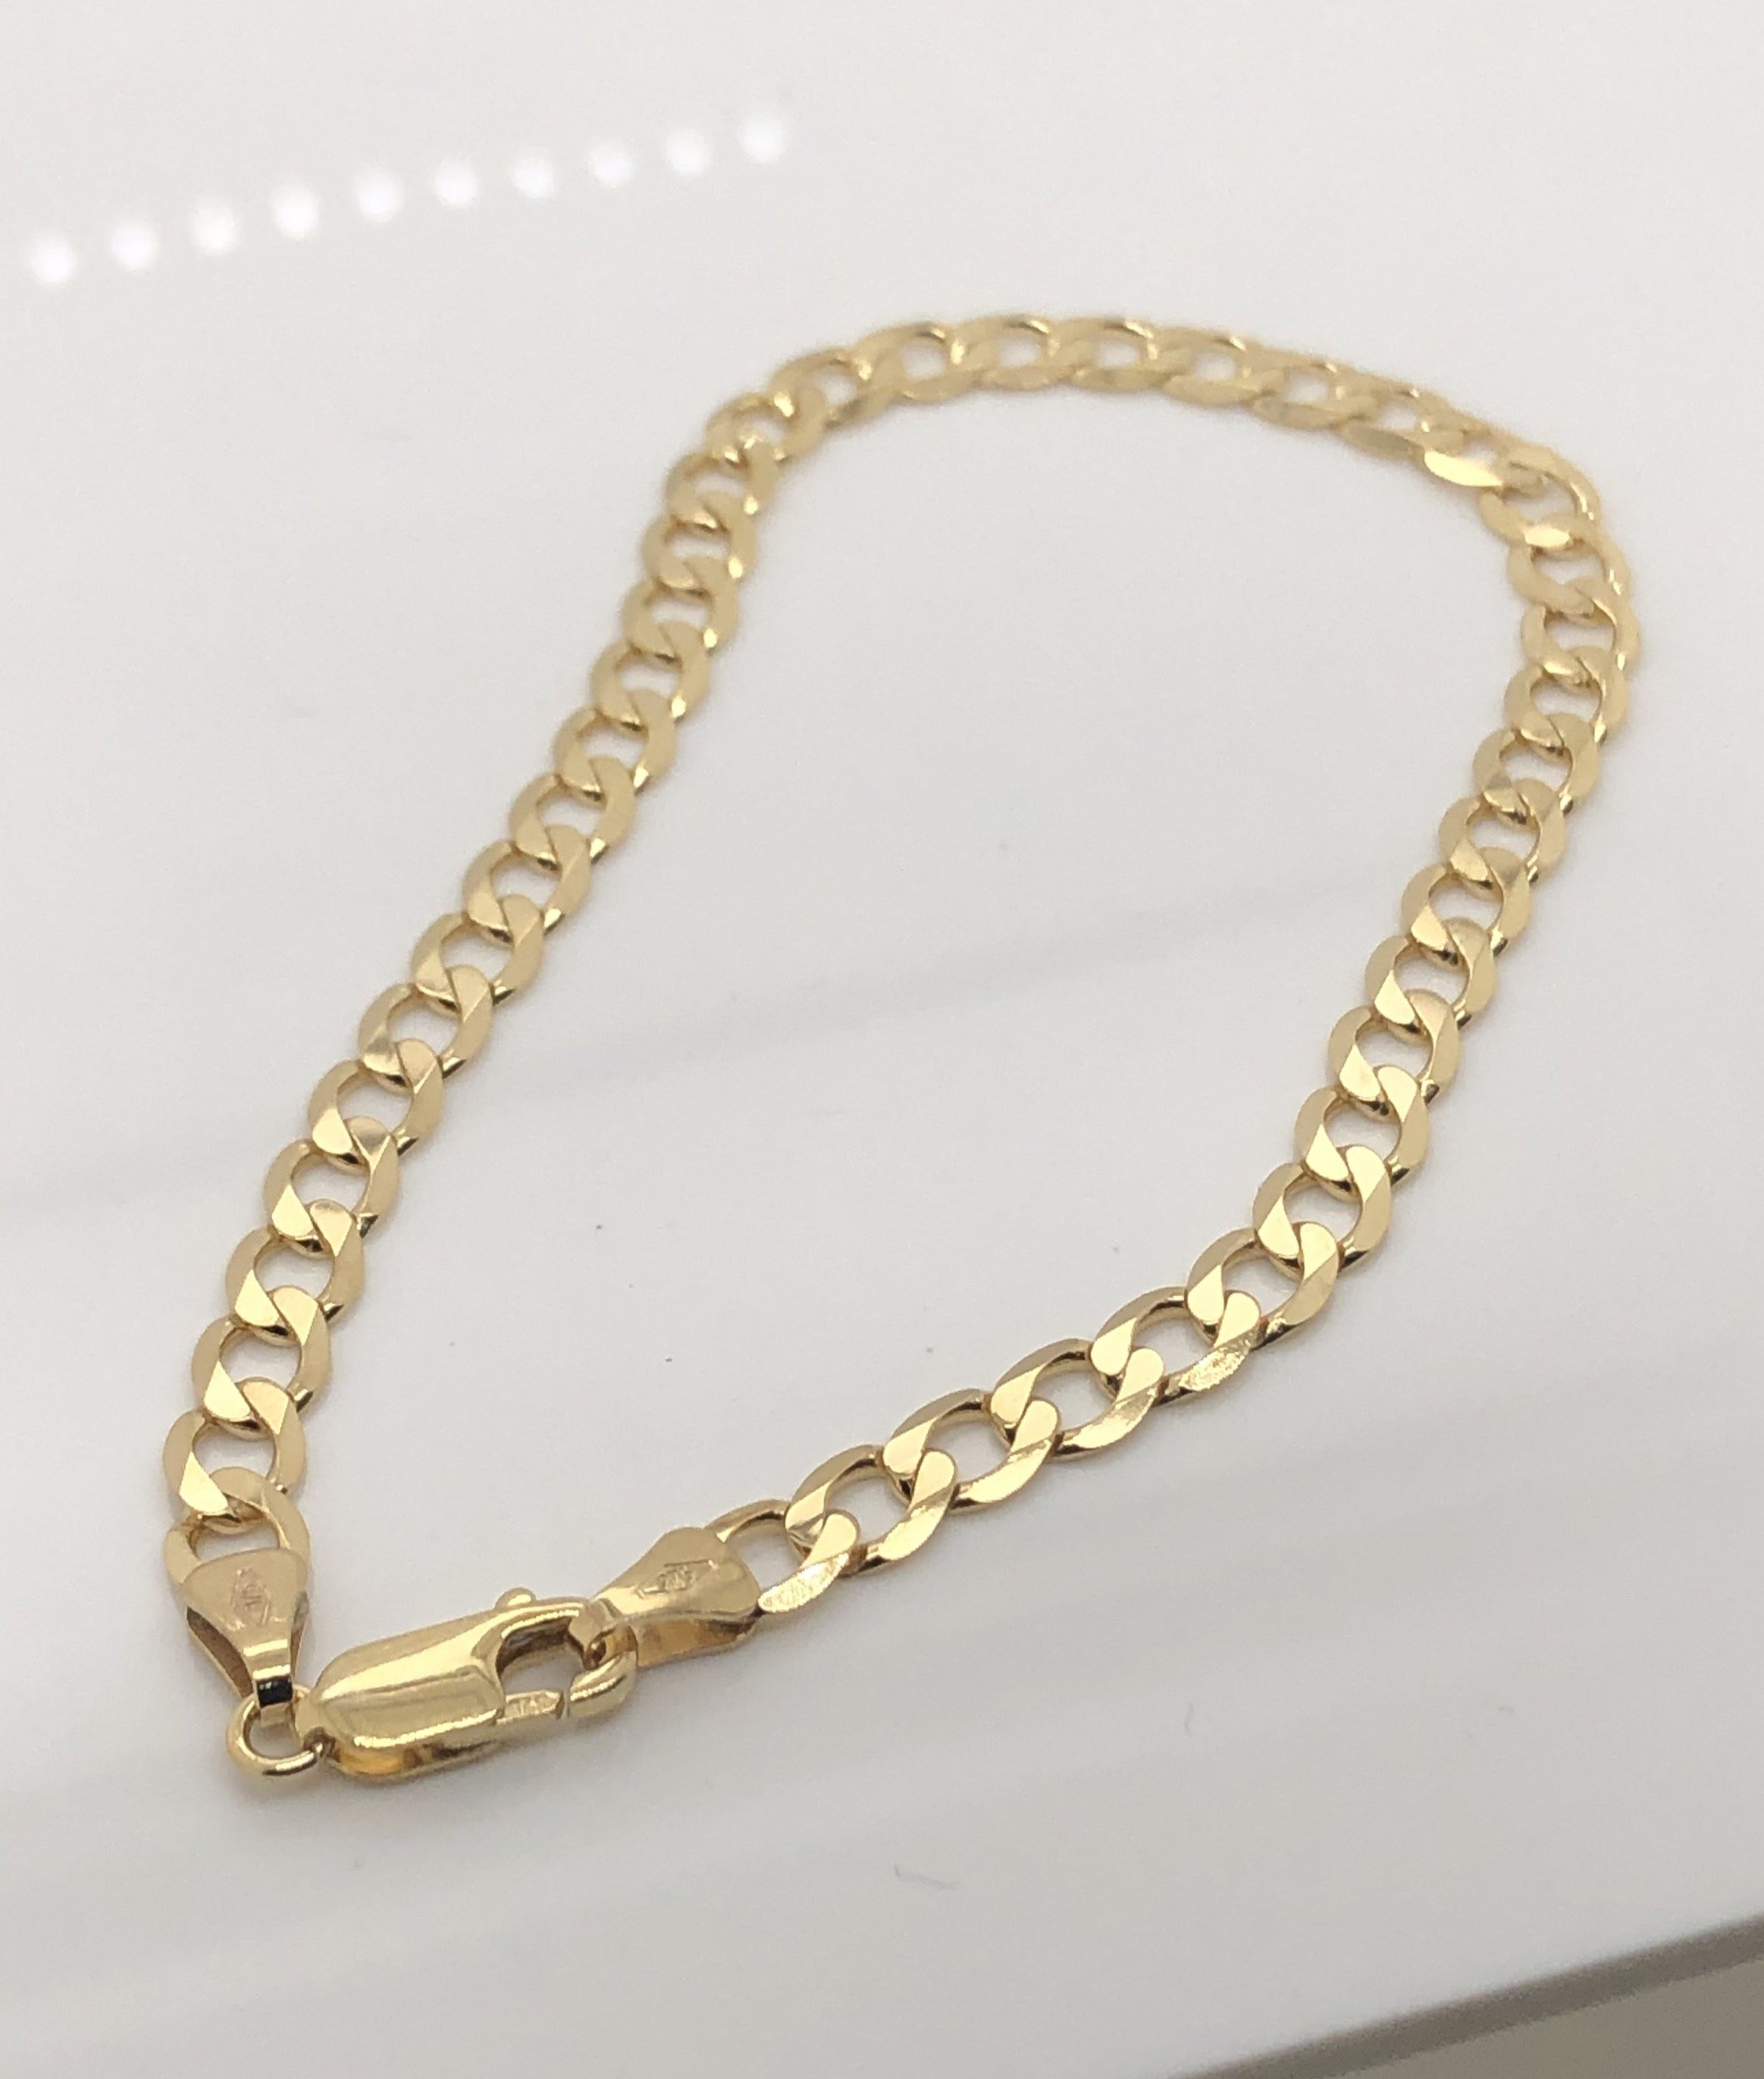 9ct Yellow Gold Curb Bracelet 22cm Long